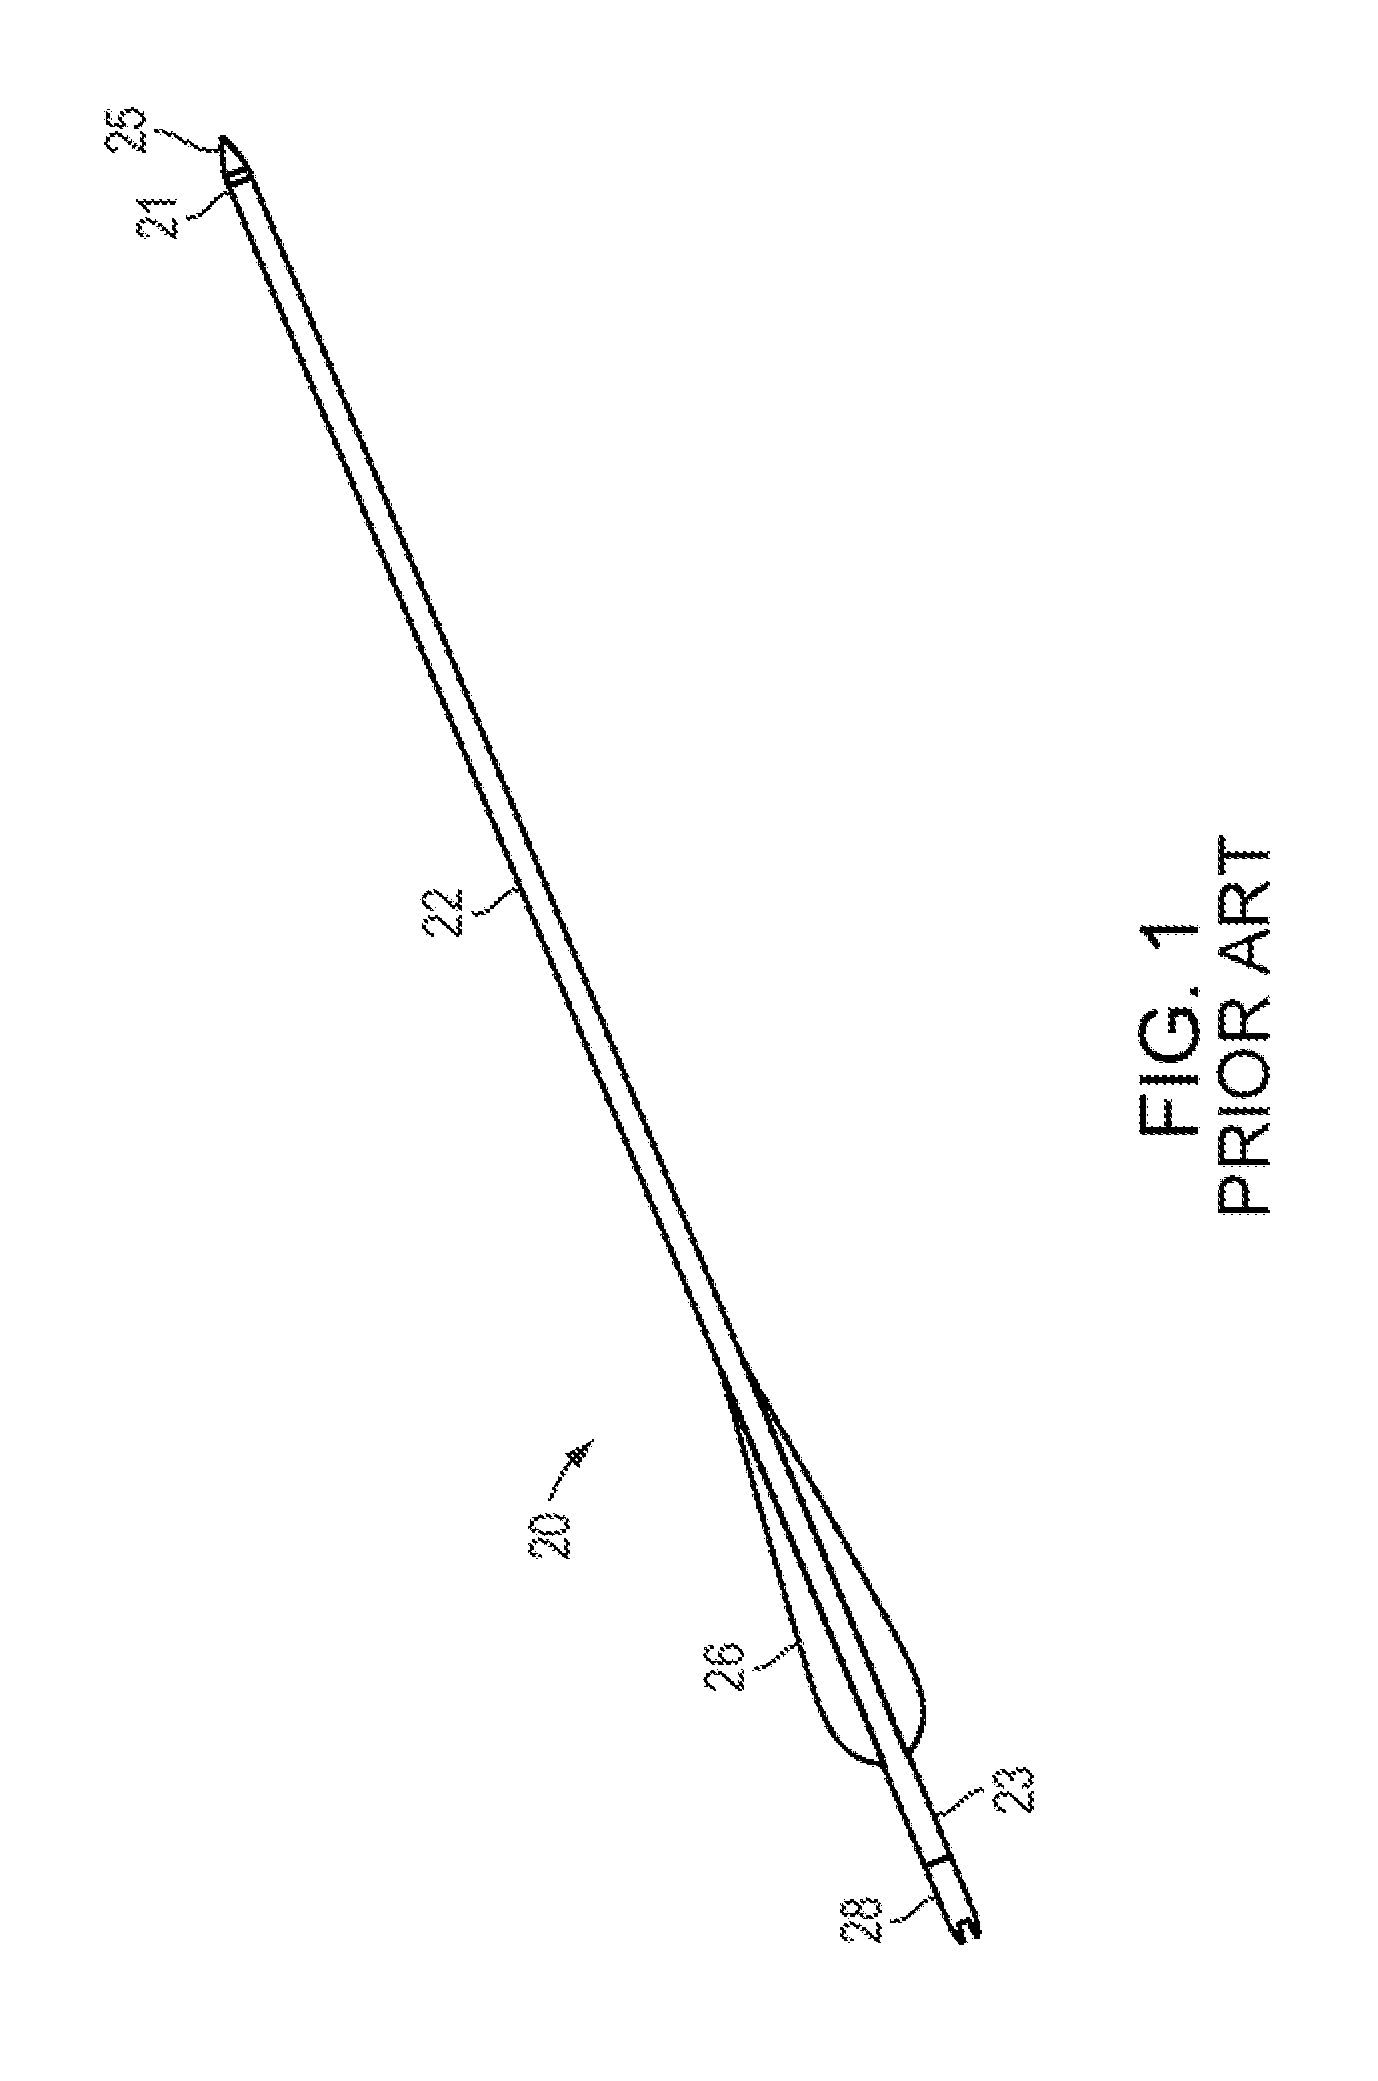 Pin Archery Arrow Diagram